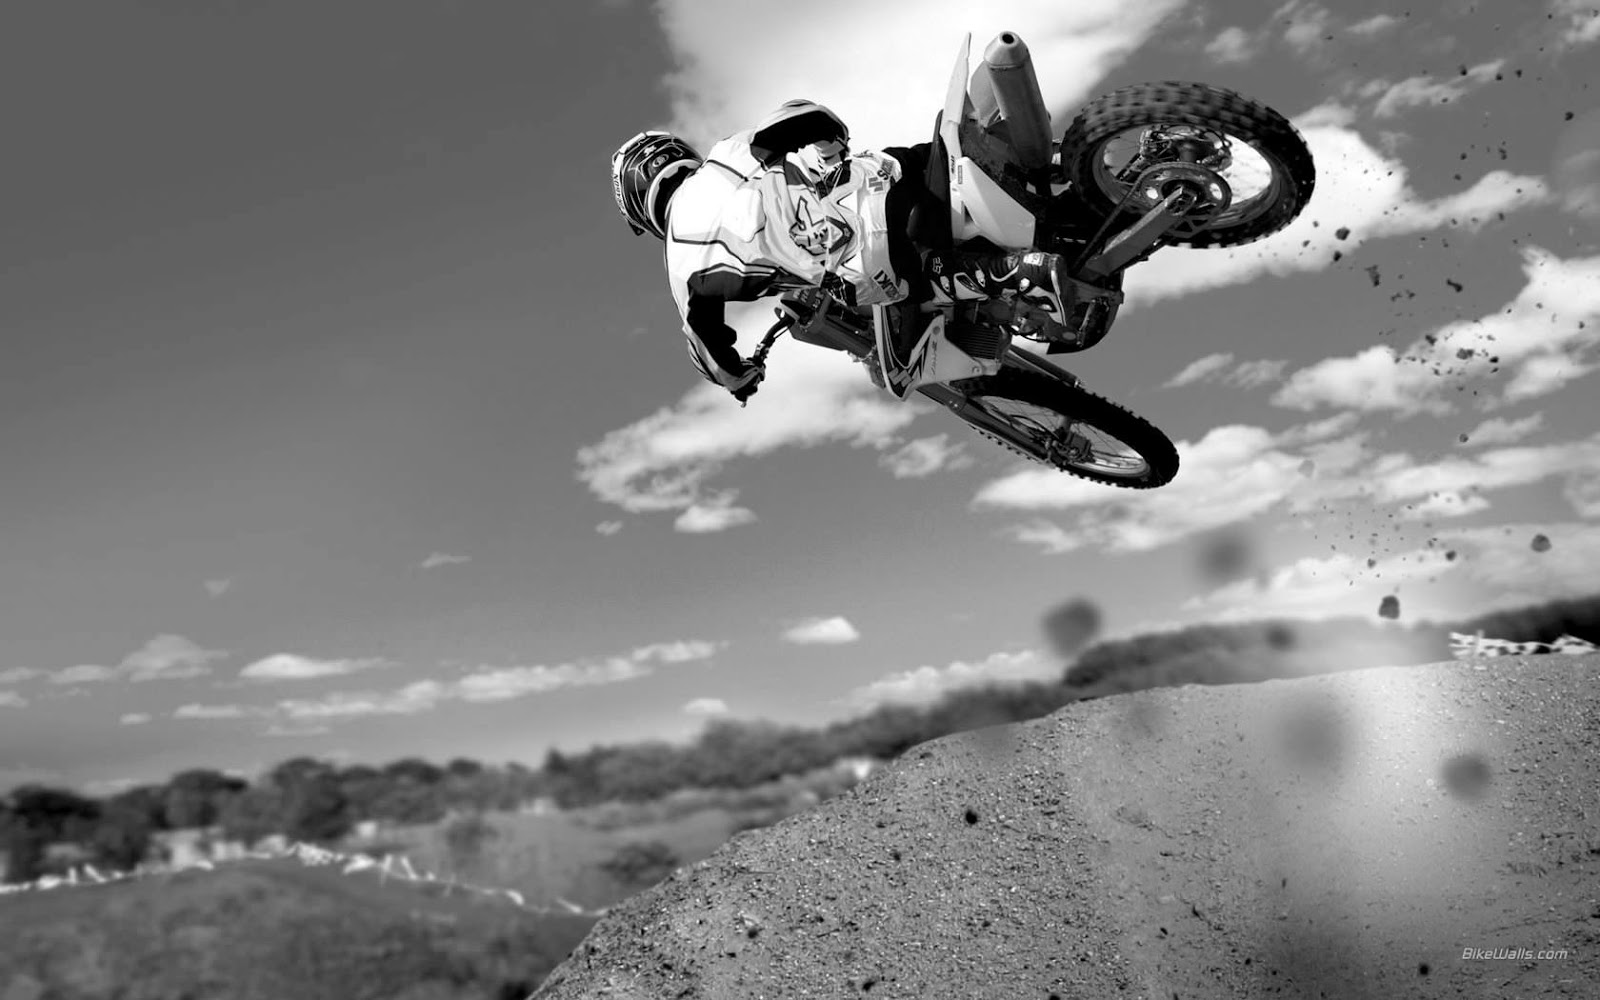 http://1.bp.blogspot.com/-_S3CG6AXqbI/UH5qFXSkzOI/AAAAAAAADxg/_rzlsJvXEJg/s1600/dirt-bike-black-and-white-wallpaper-04.jpg